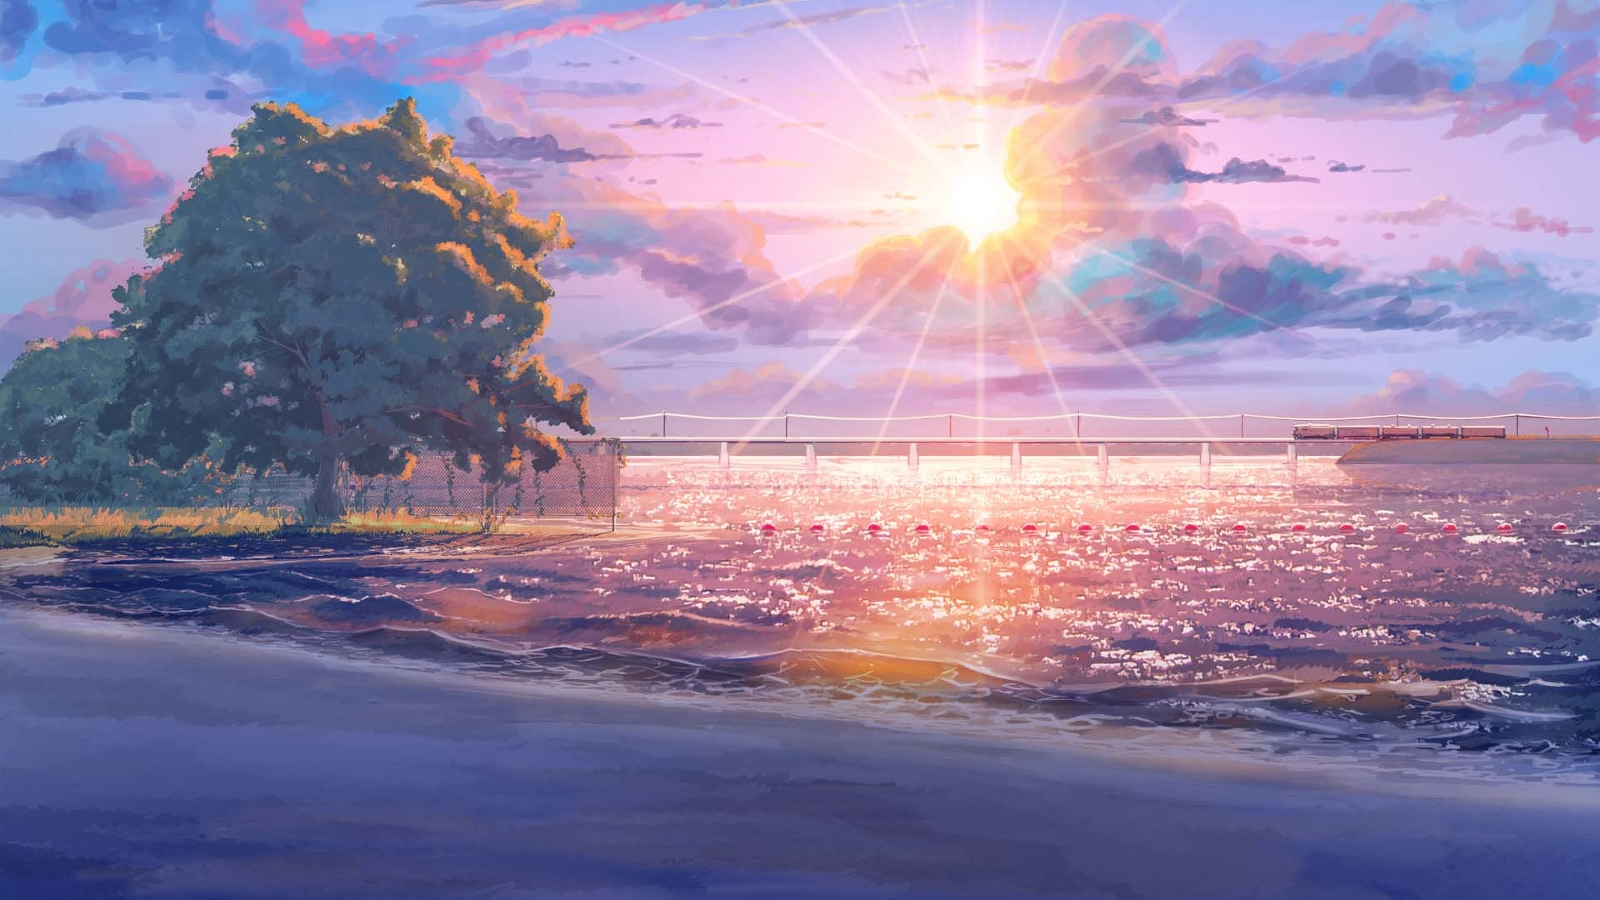 Anime Scenery Wallpapers   Page 18   WallpaperVortexcom 1600x900